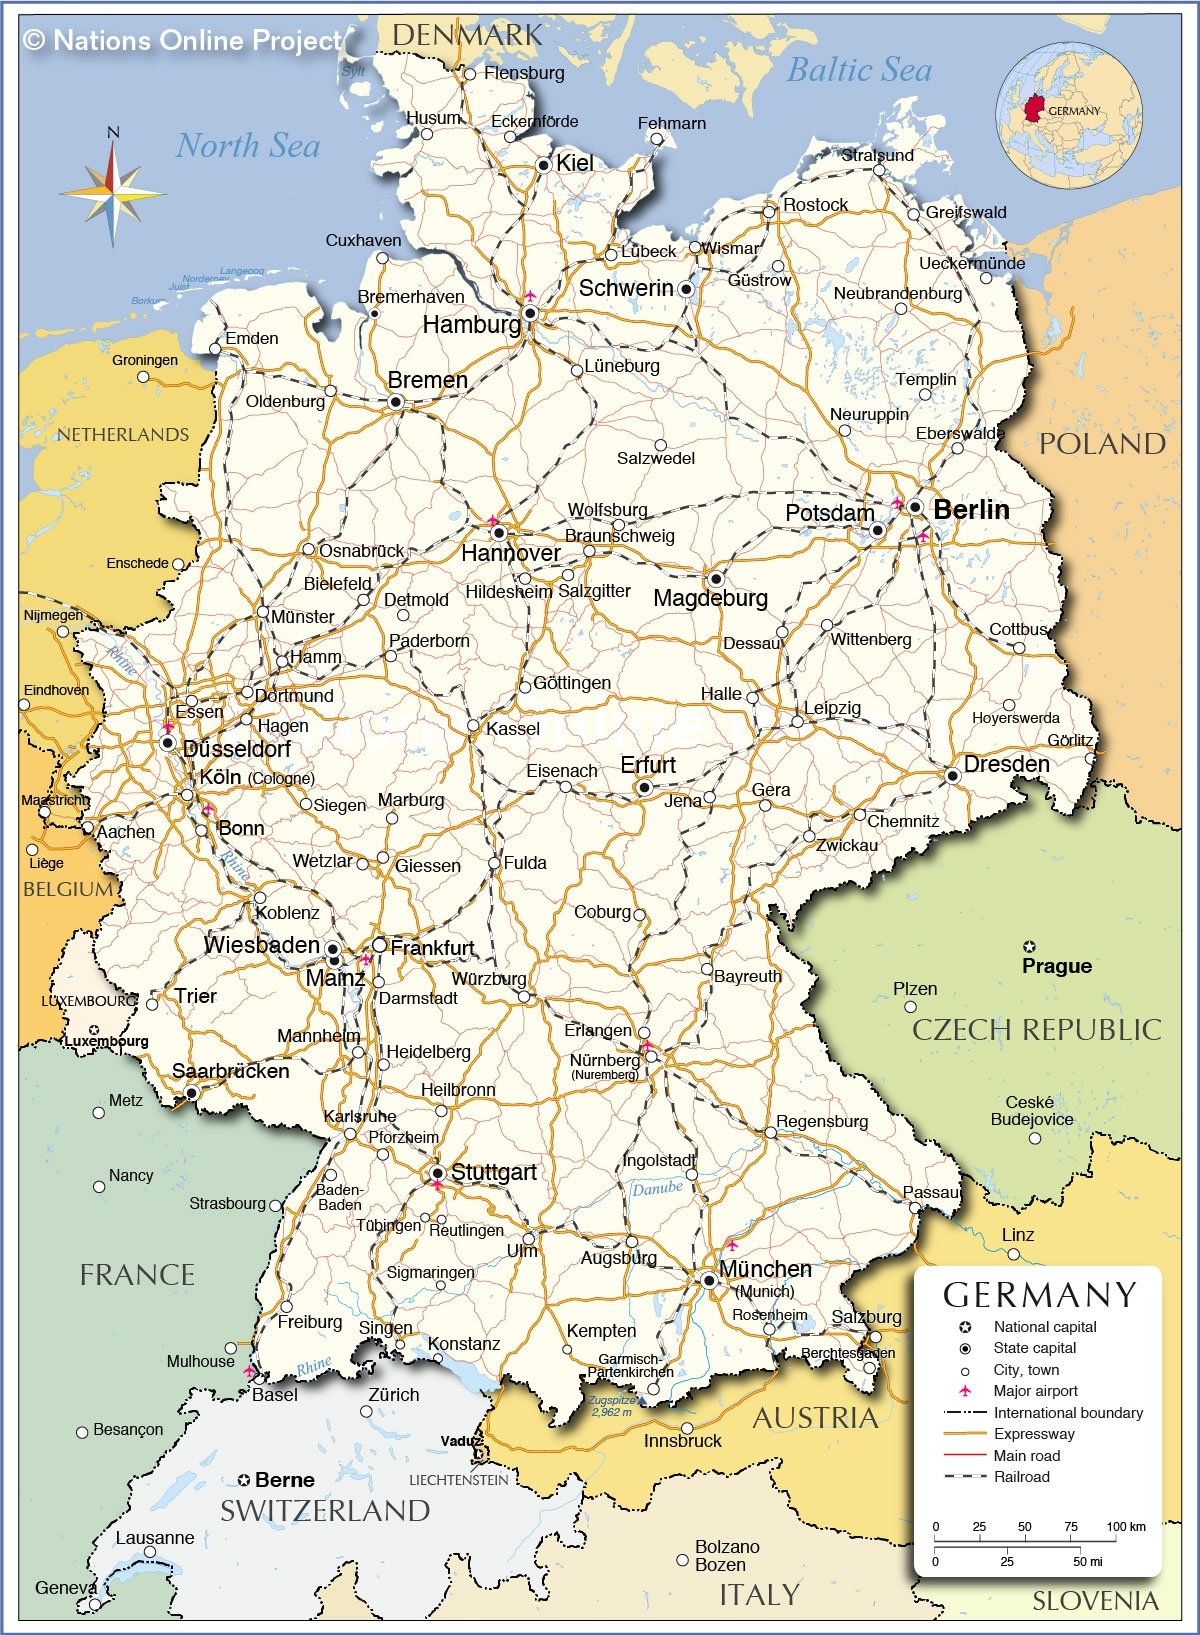 Political Map Of Germany - Nations Online Project regarding Map Of Germany And Austria With Cities